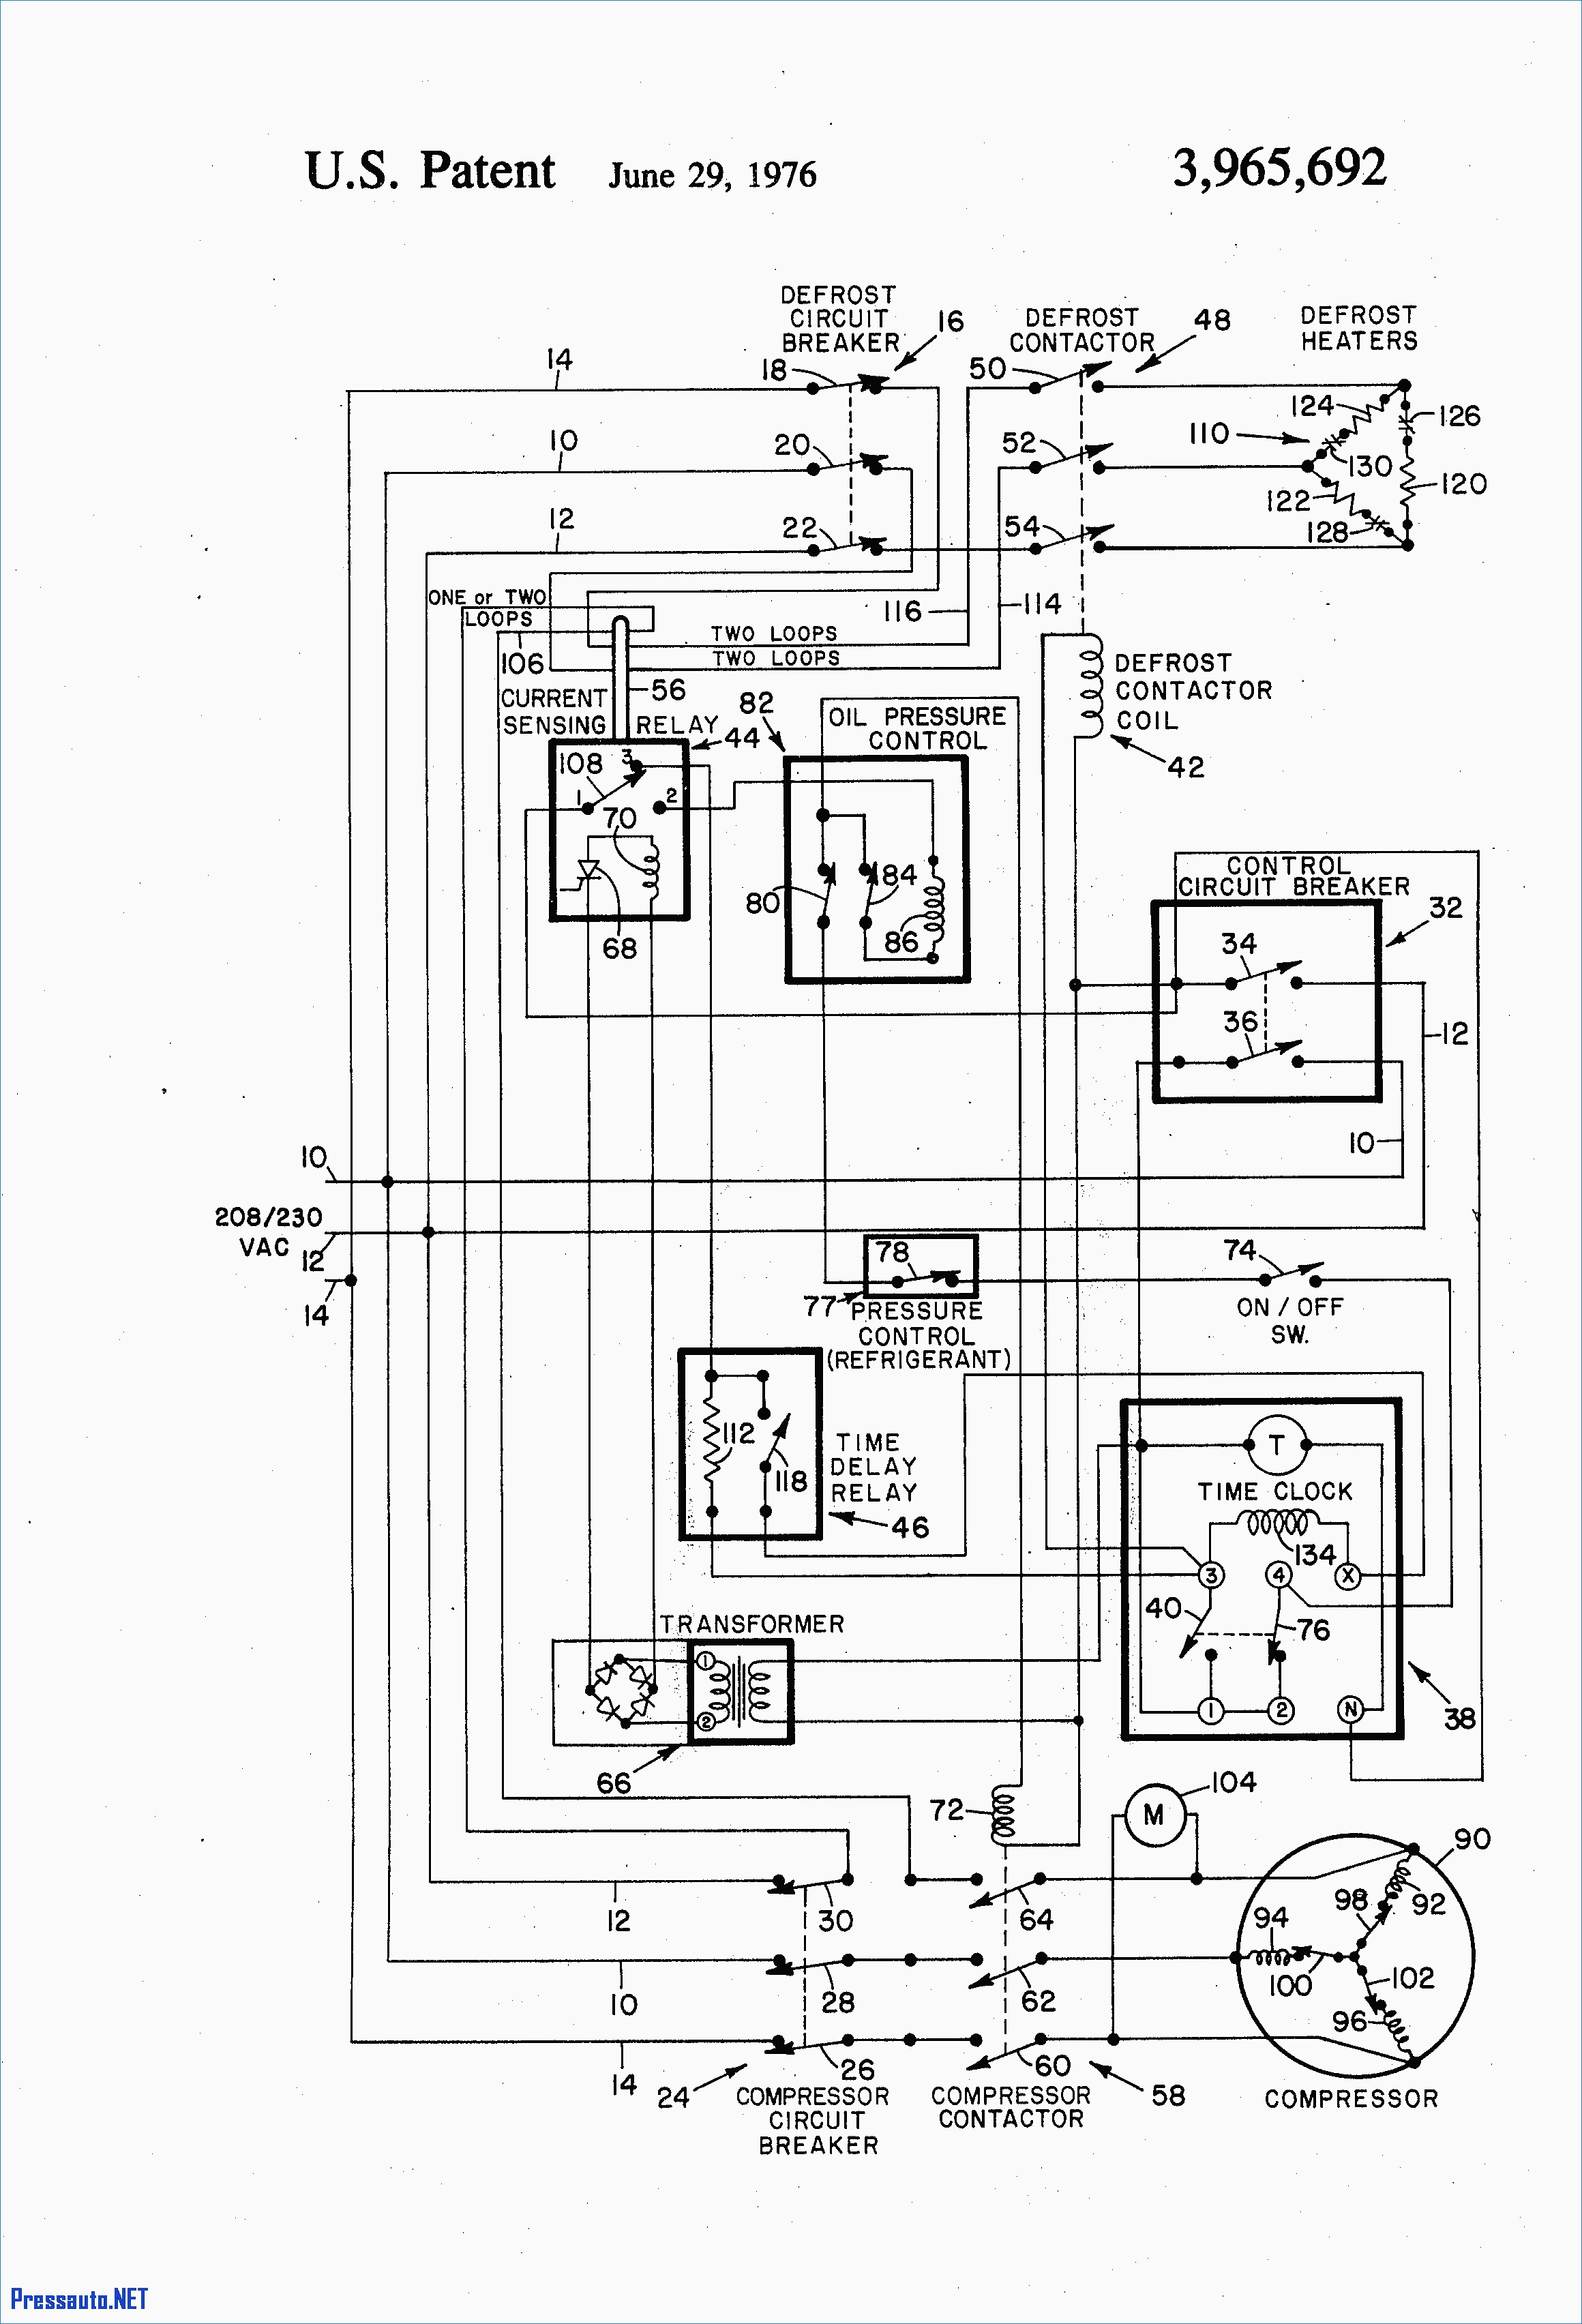 Wfco 8955 Wiring Diagram from wholefoodsonabudget.com